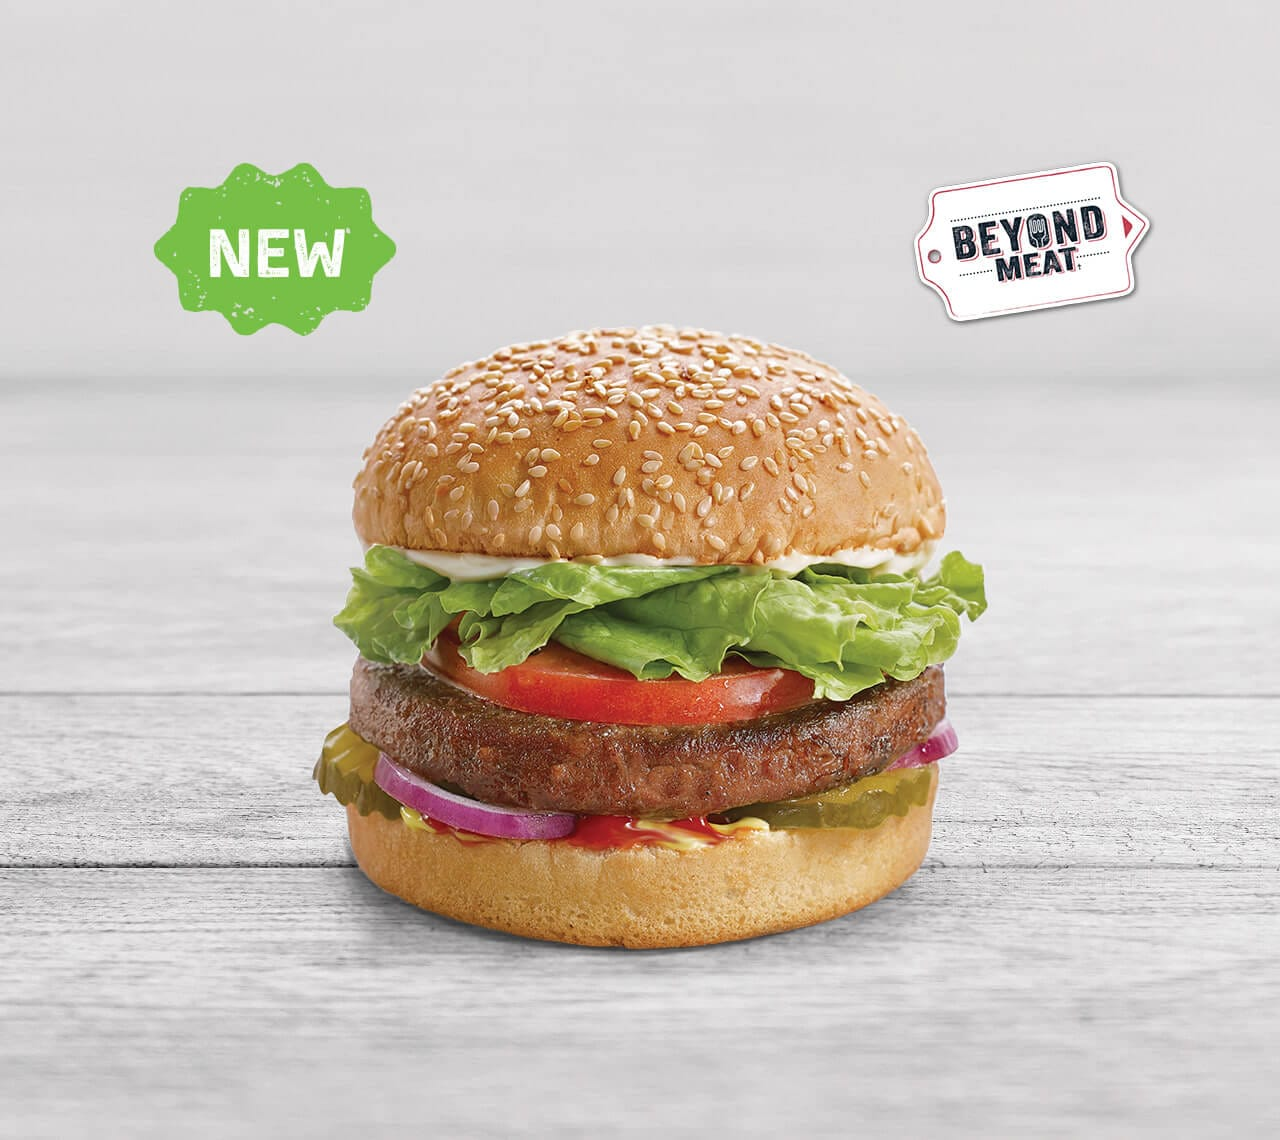 Beyond Meat Burger A and W - Meatless Burgers. What's The Deal?